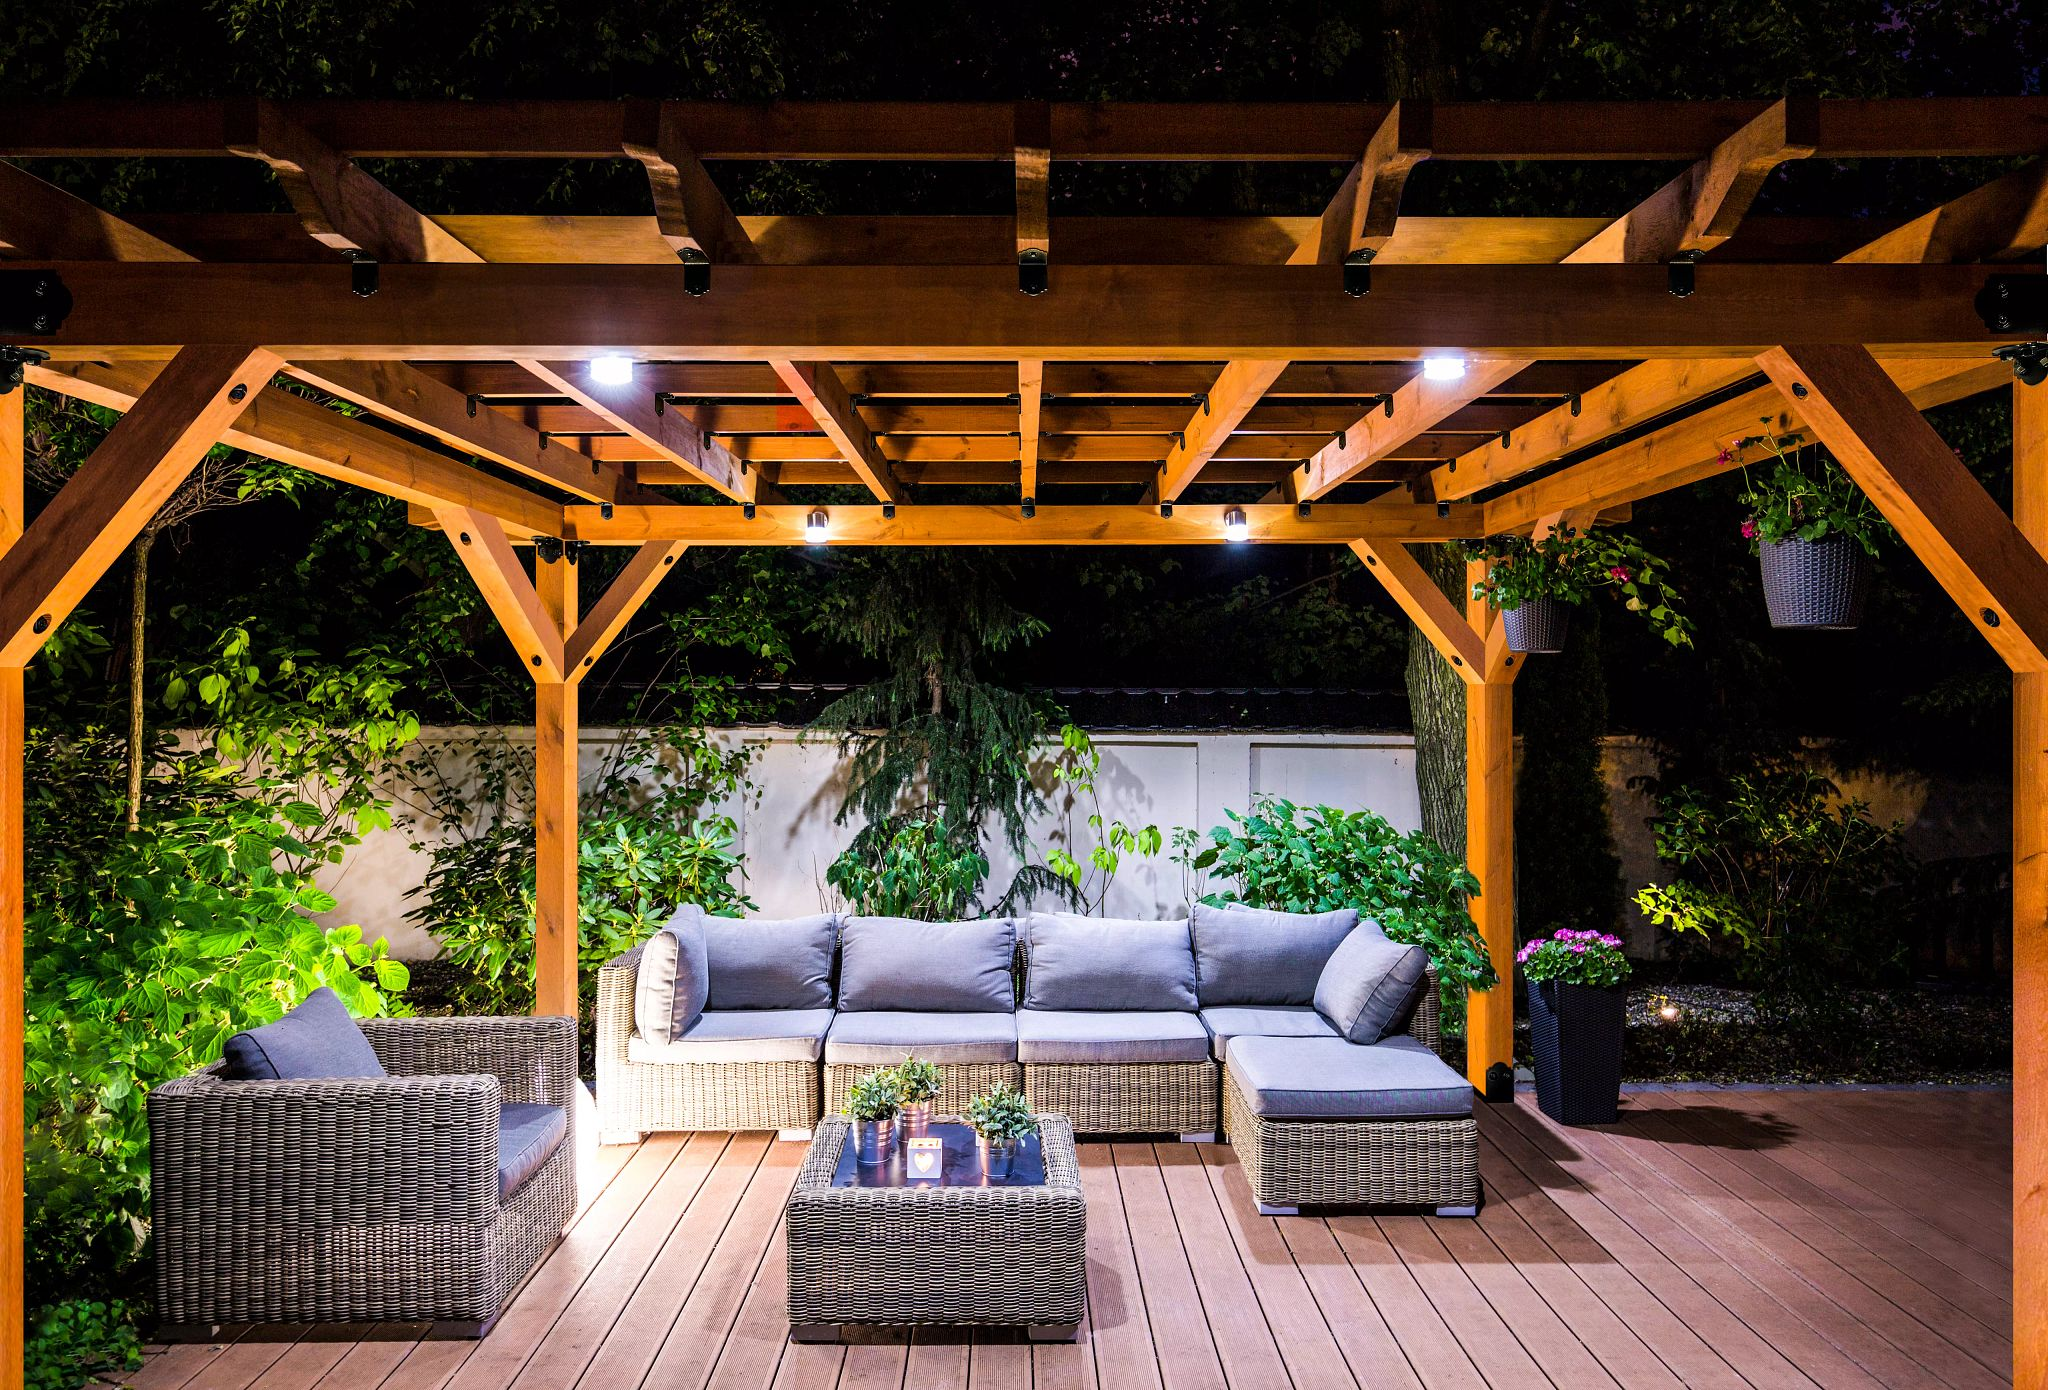 Outdoor Accents - Design Your Outdoor Living Space